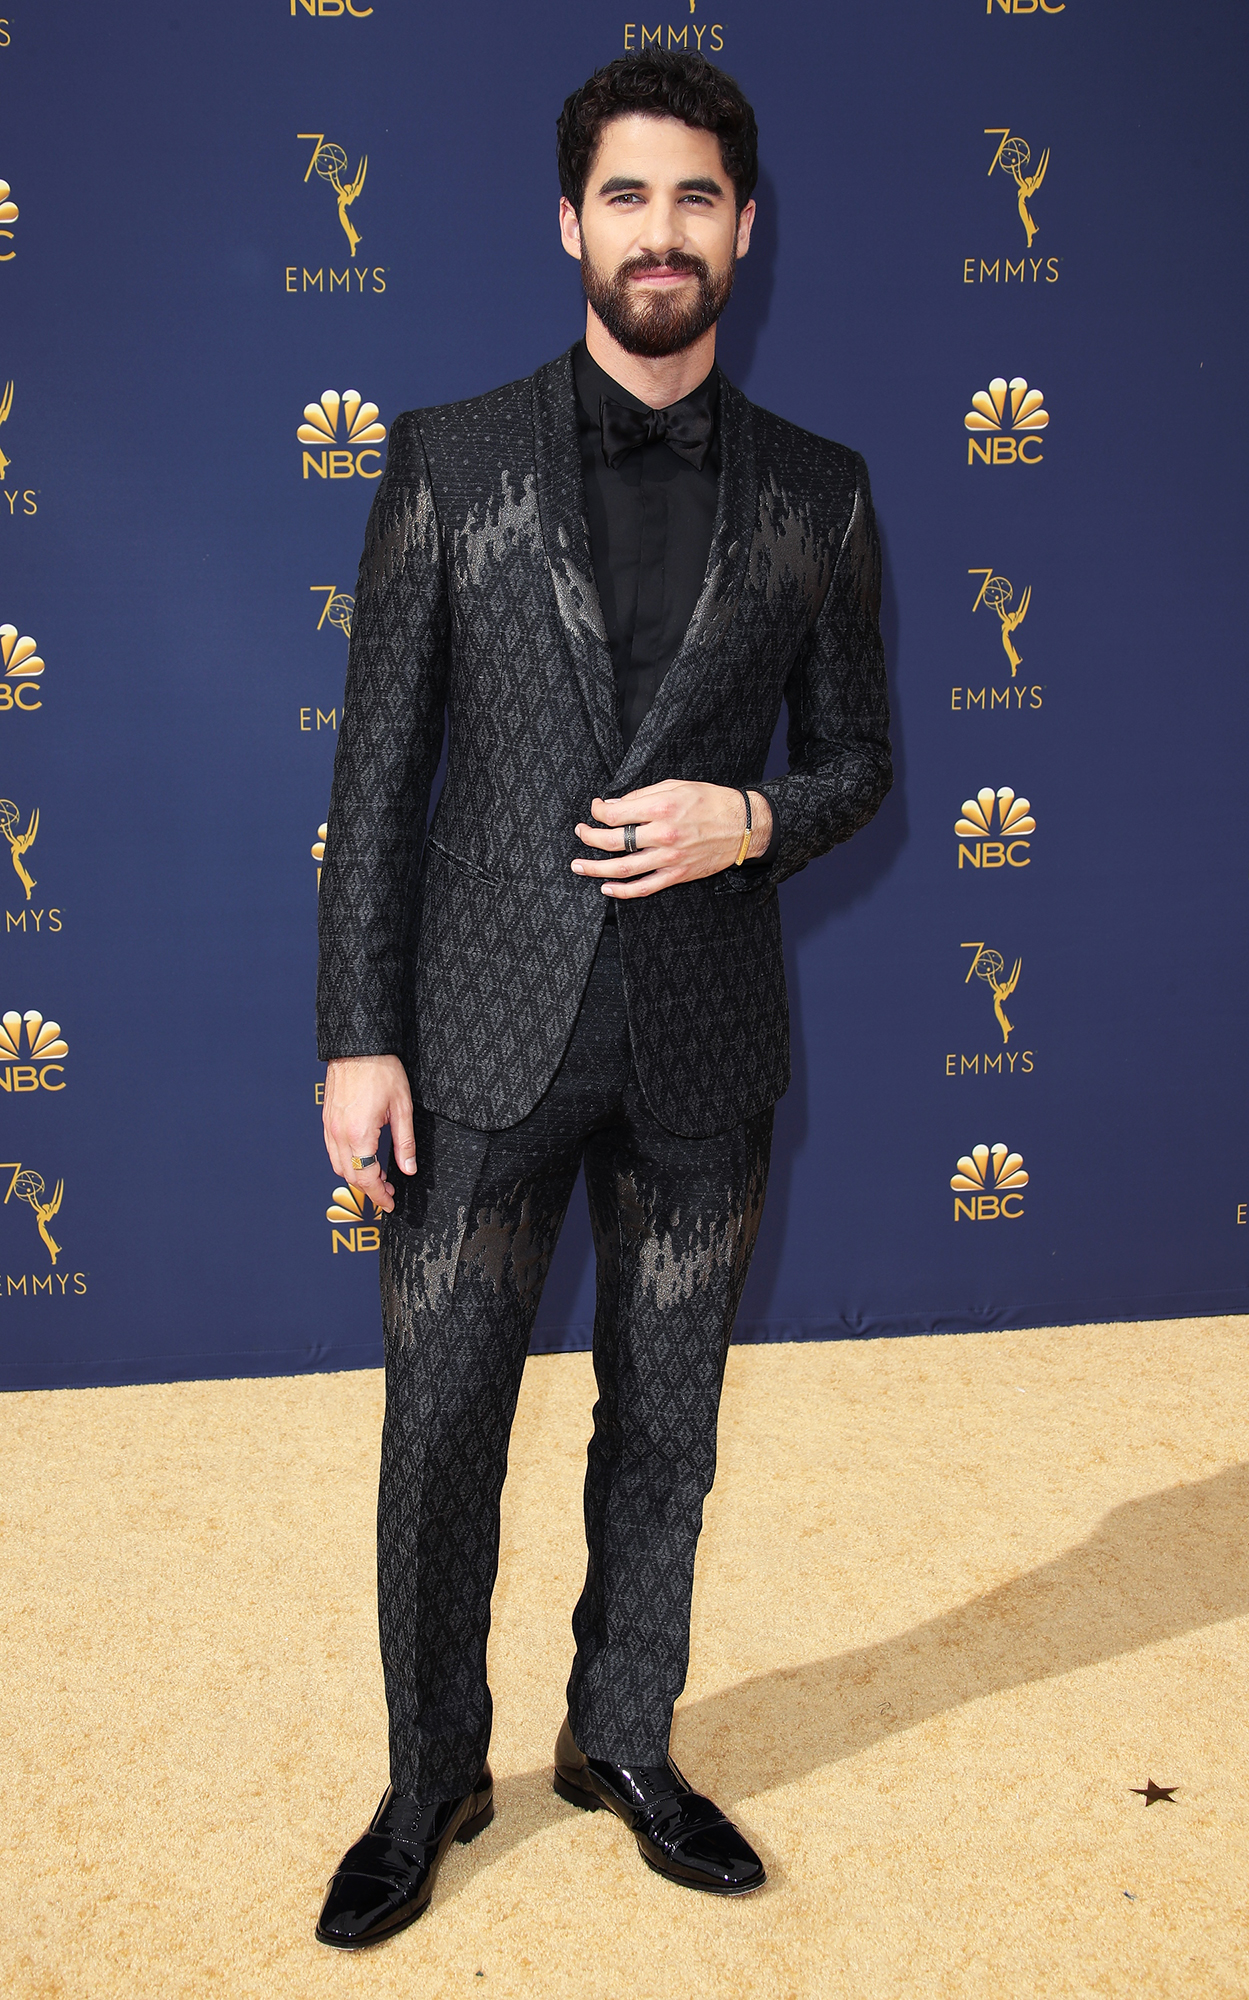 Hottest Guys in Suits - 2018 Edition - Taking home an Emmy for his role in the Assassination of Gianni Versace , the actor shimmered in Giorgio Armani at the event.